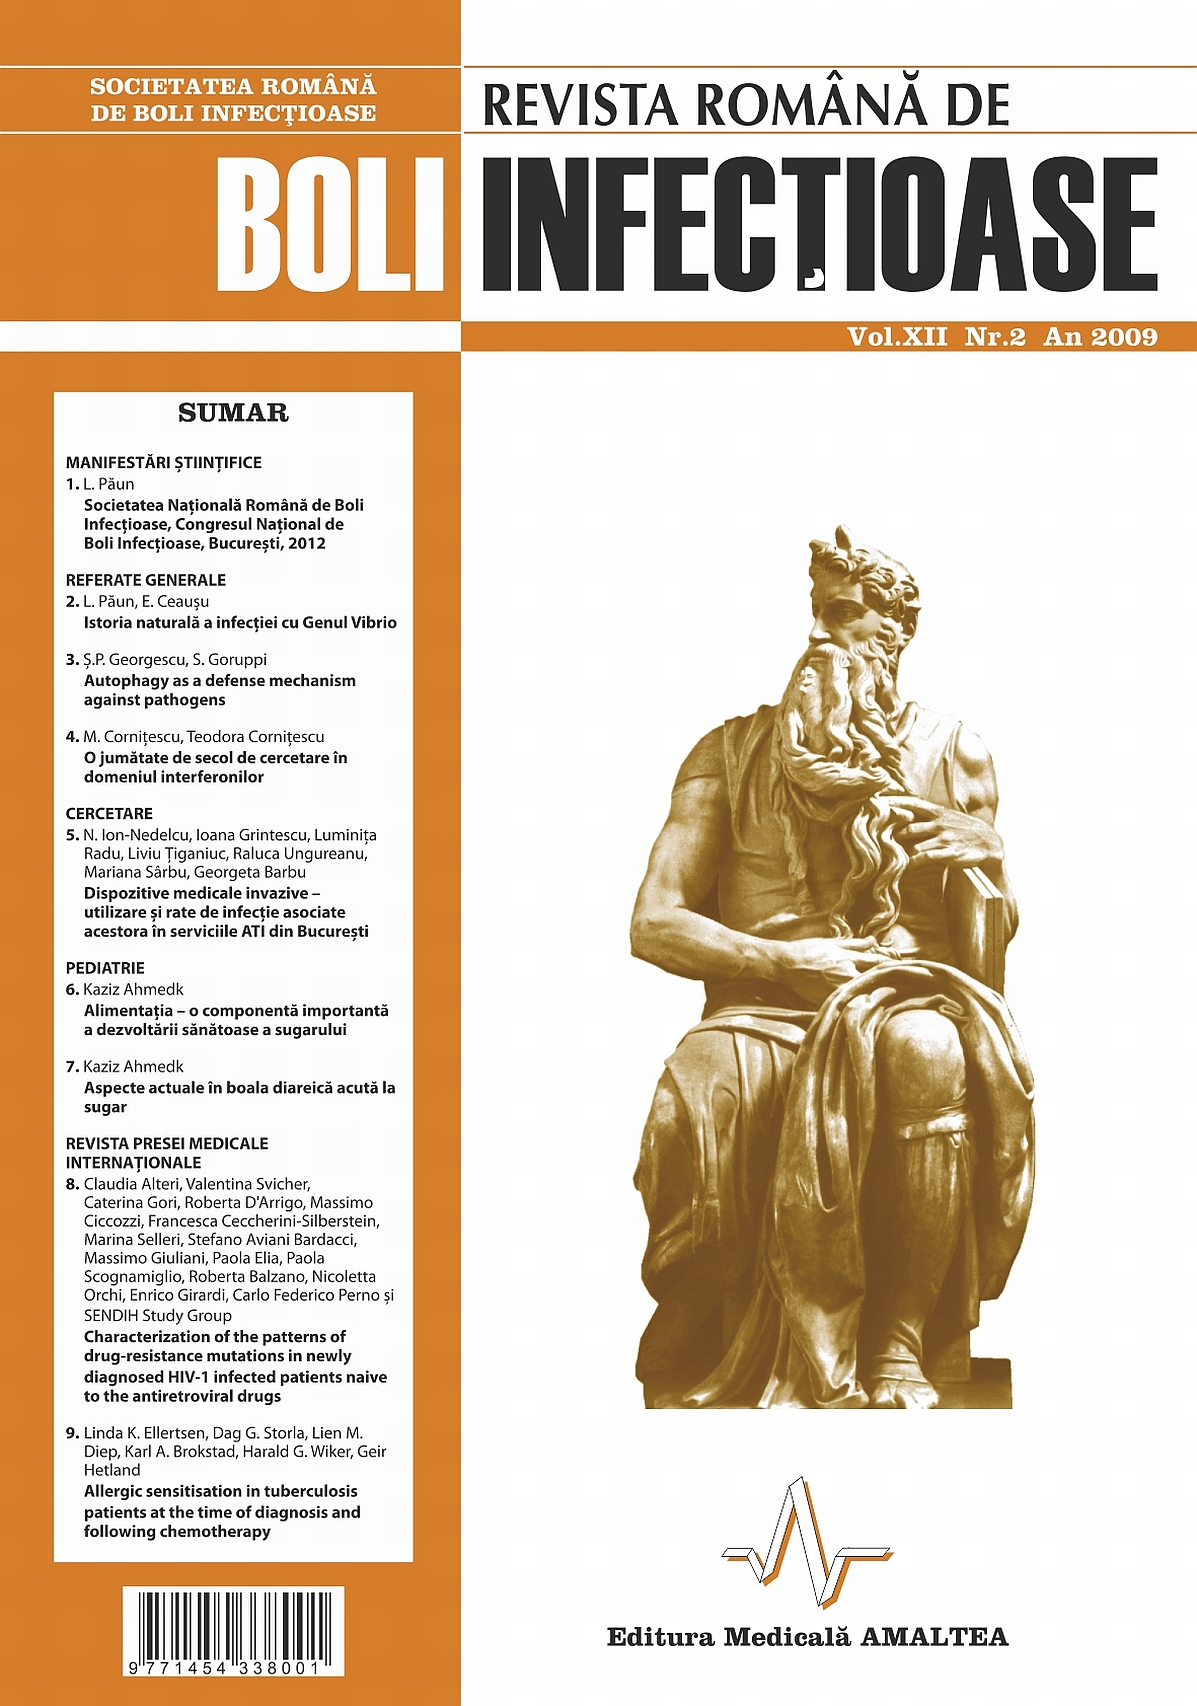 Revista Romana de Boli Infectioase | Vol. XII, No. 2, 2009